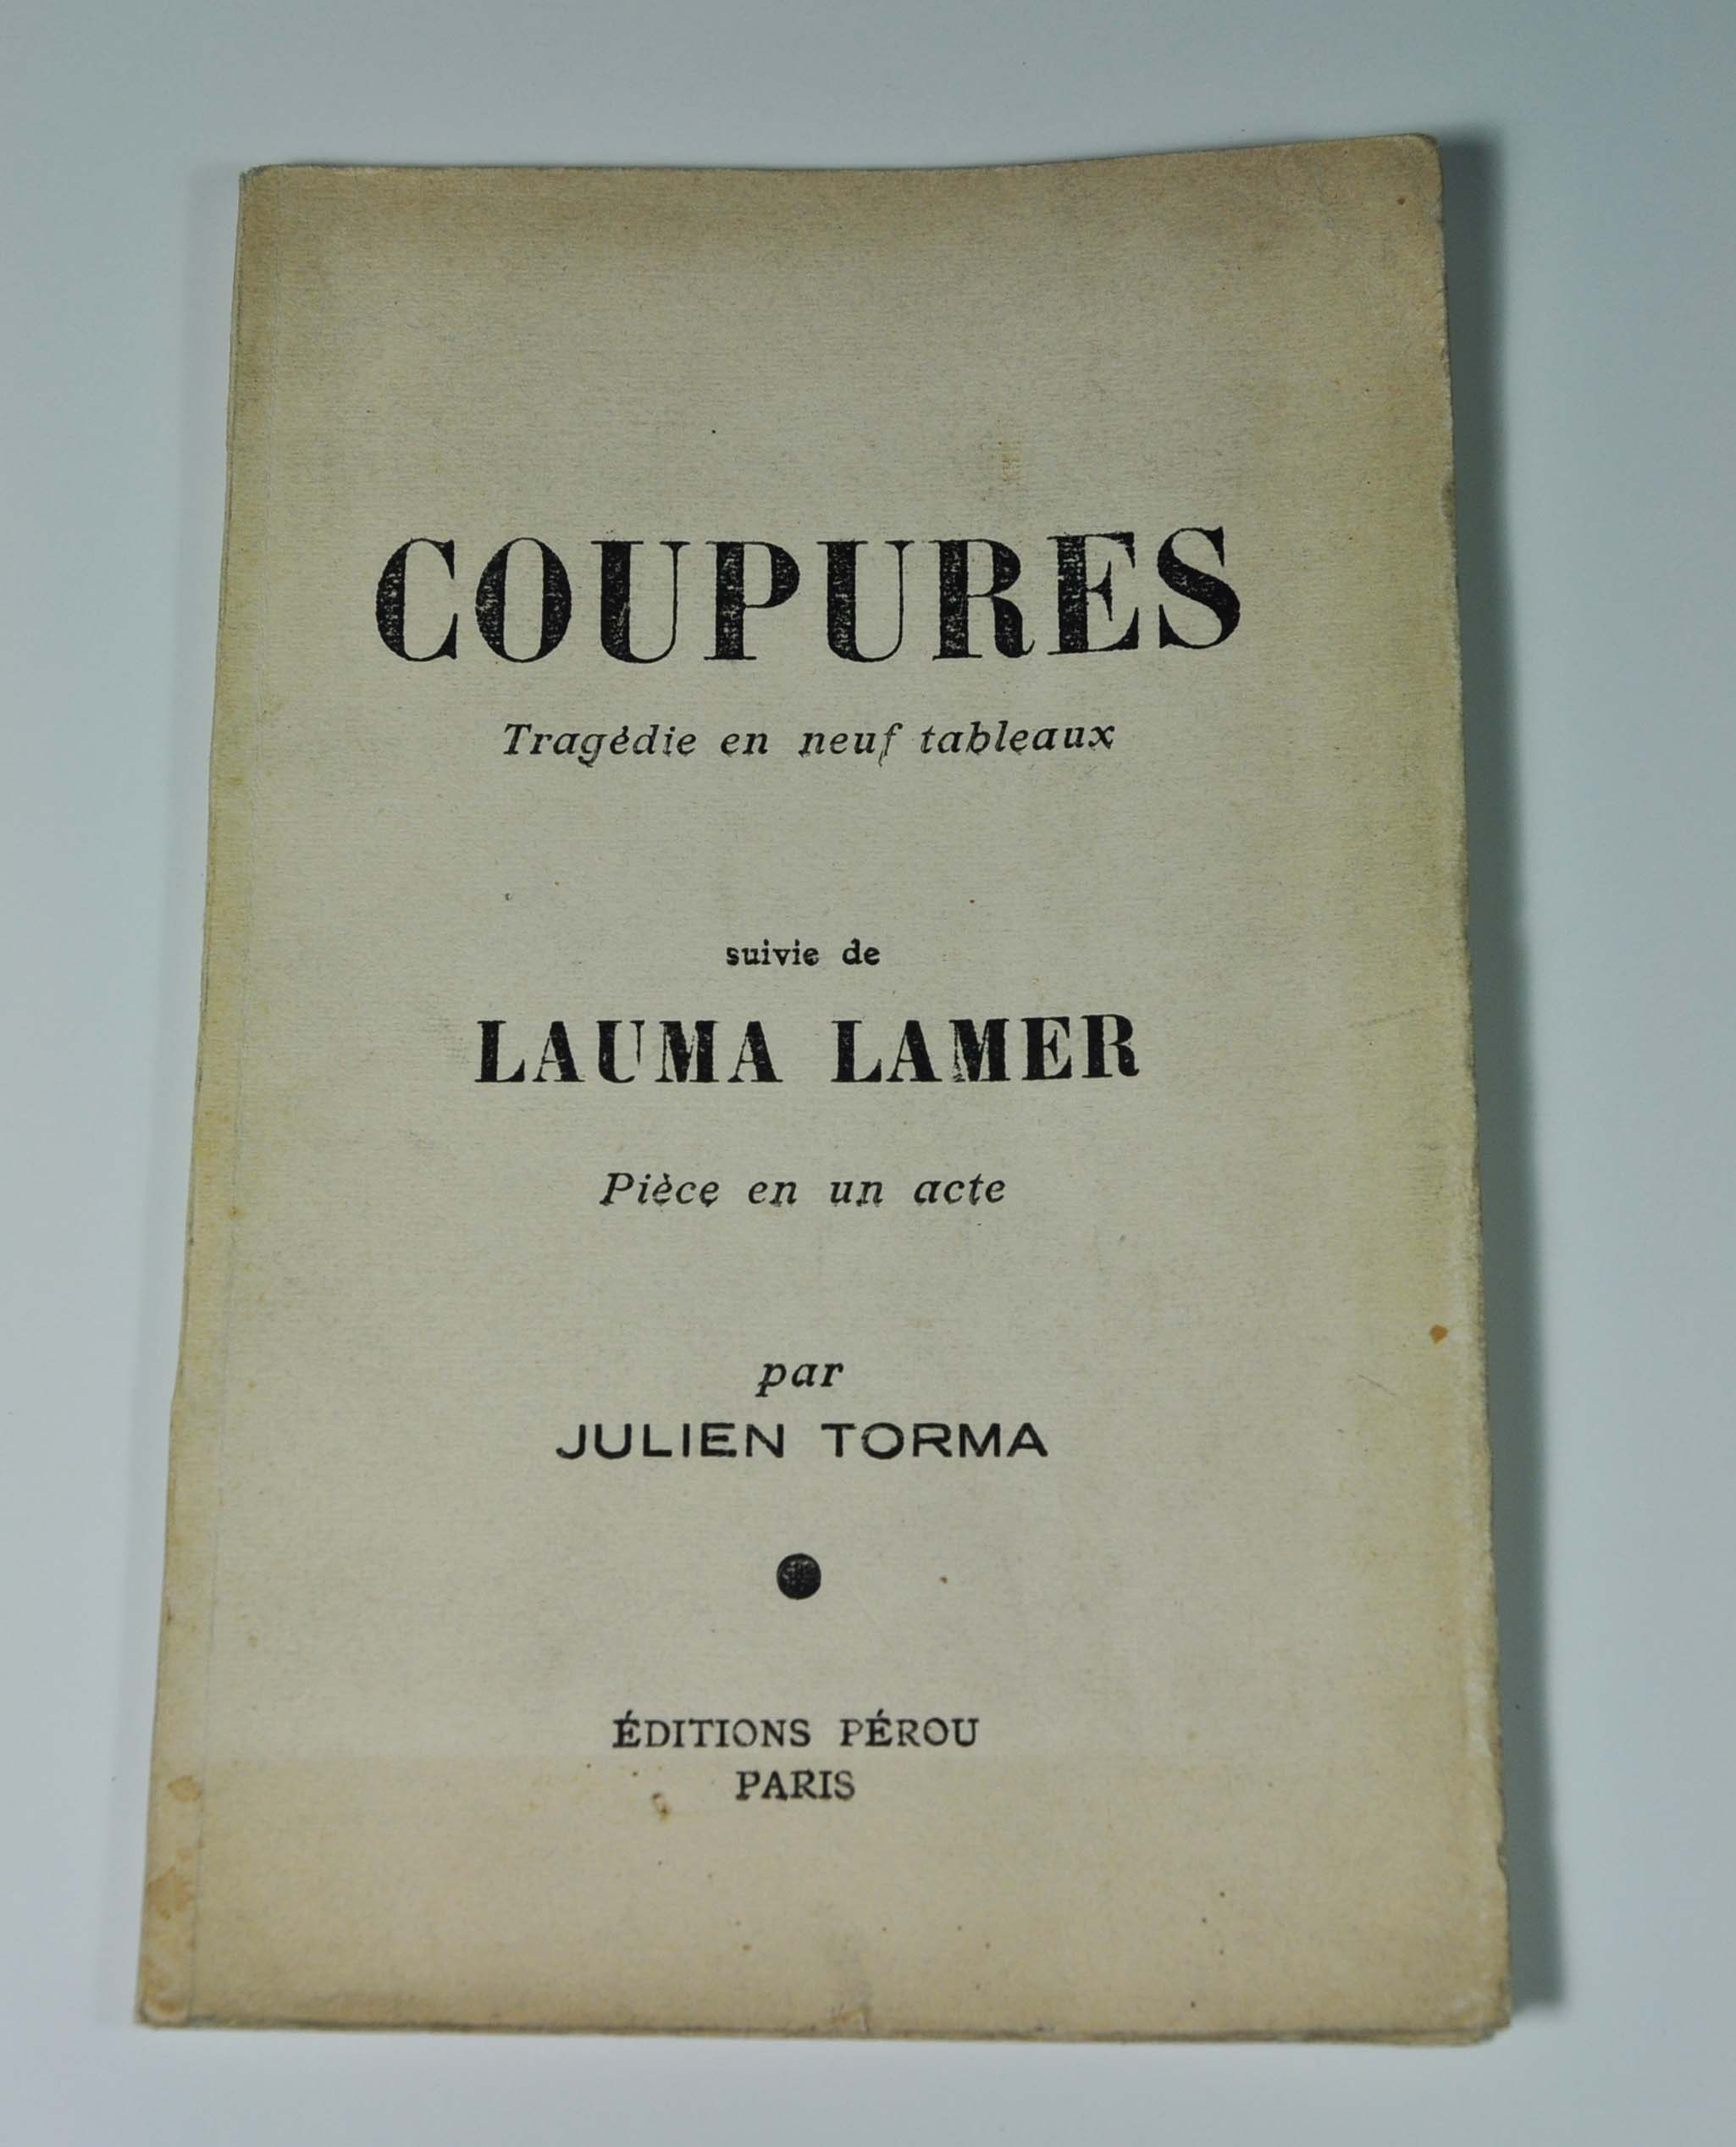 TORMA Julien Coupures, tragédie en neuf tableaux, suivie de Lauma Lamer Editions Pérou, Paris, 1926. In-12 broché, 48 p. Edition originale. L